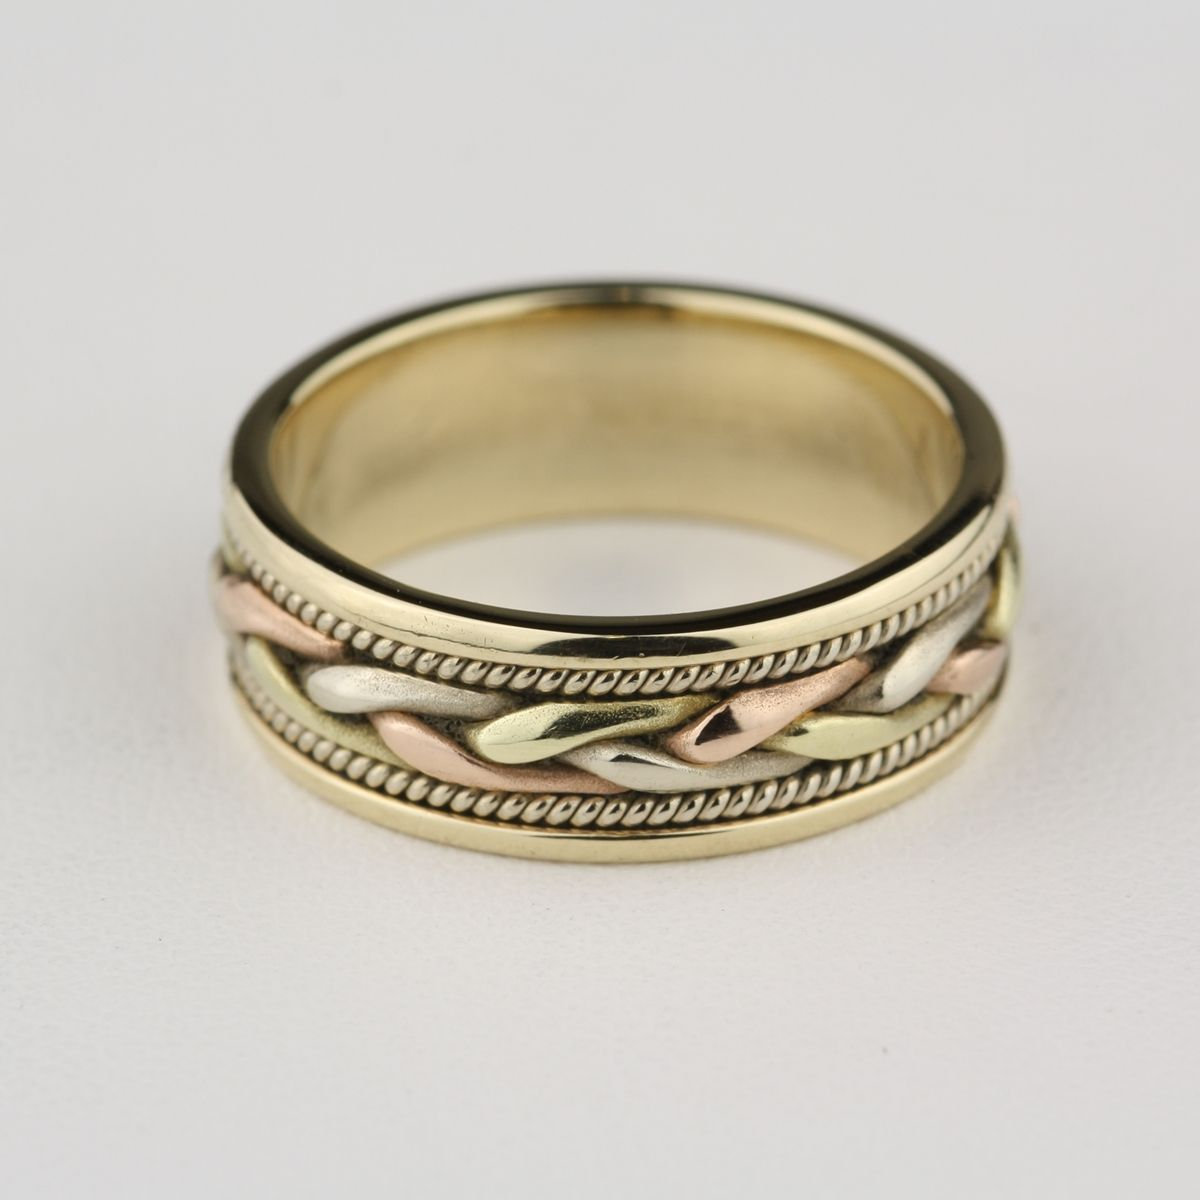 Braided Rope Style Tri-Color Band $429.00